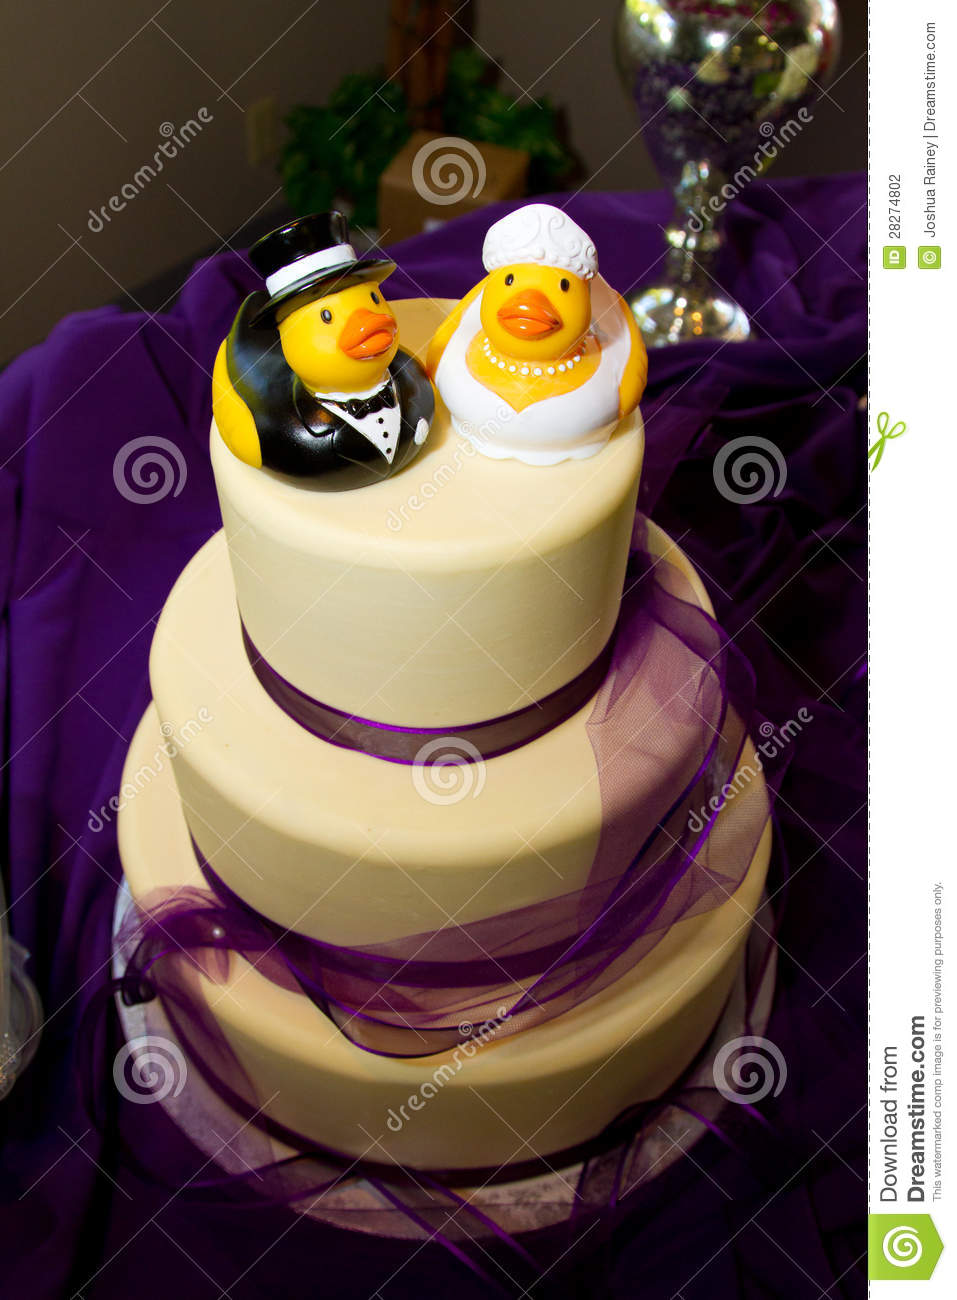 Rubber Duck Cake stock photo Image of vertical eating  28274802